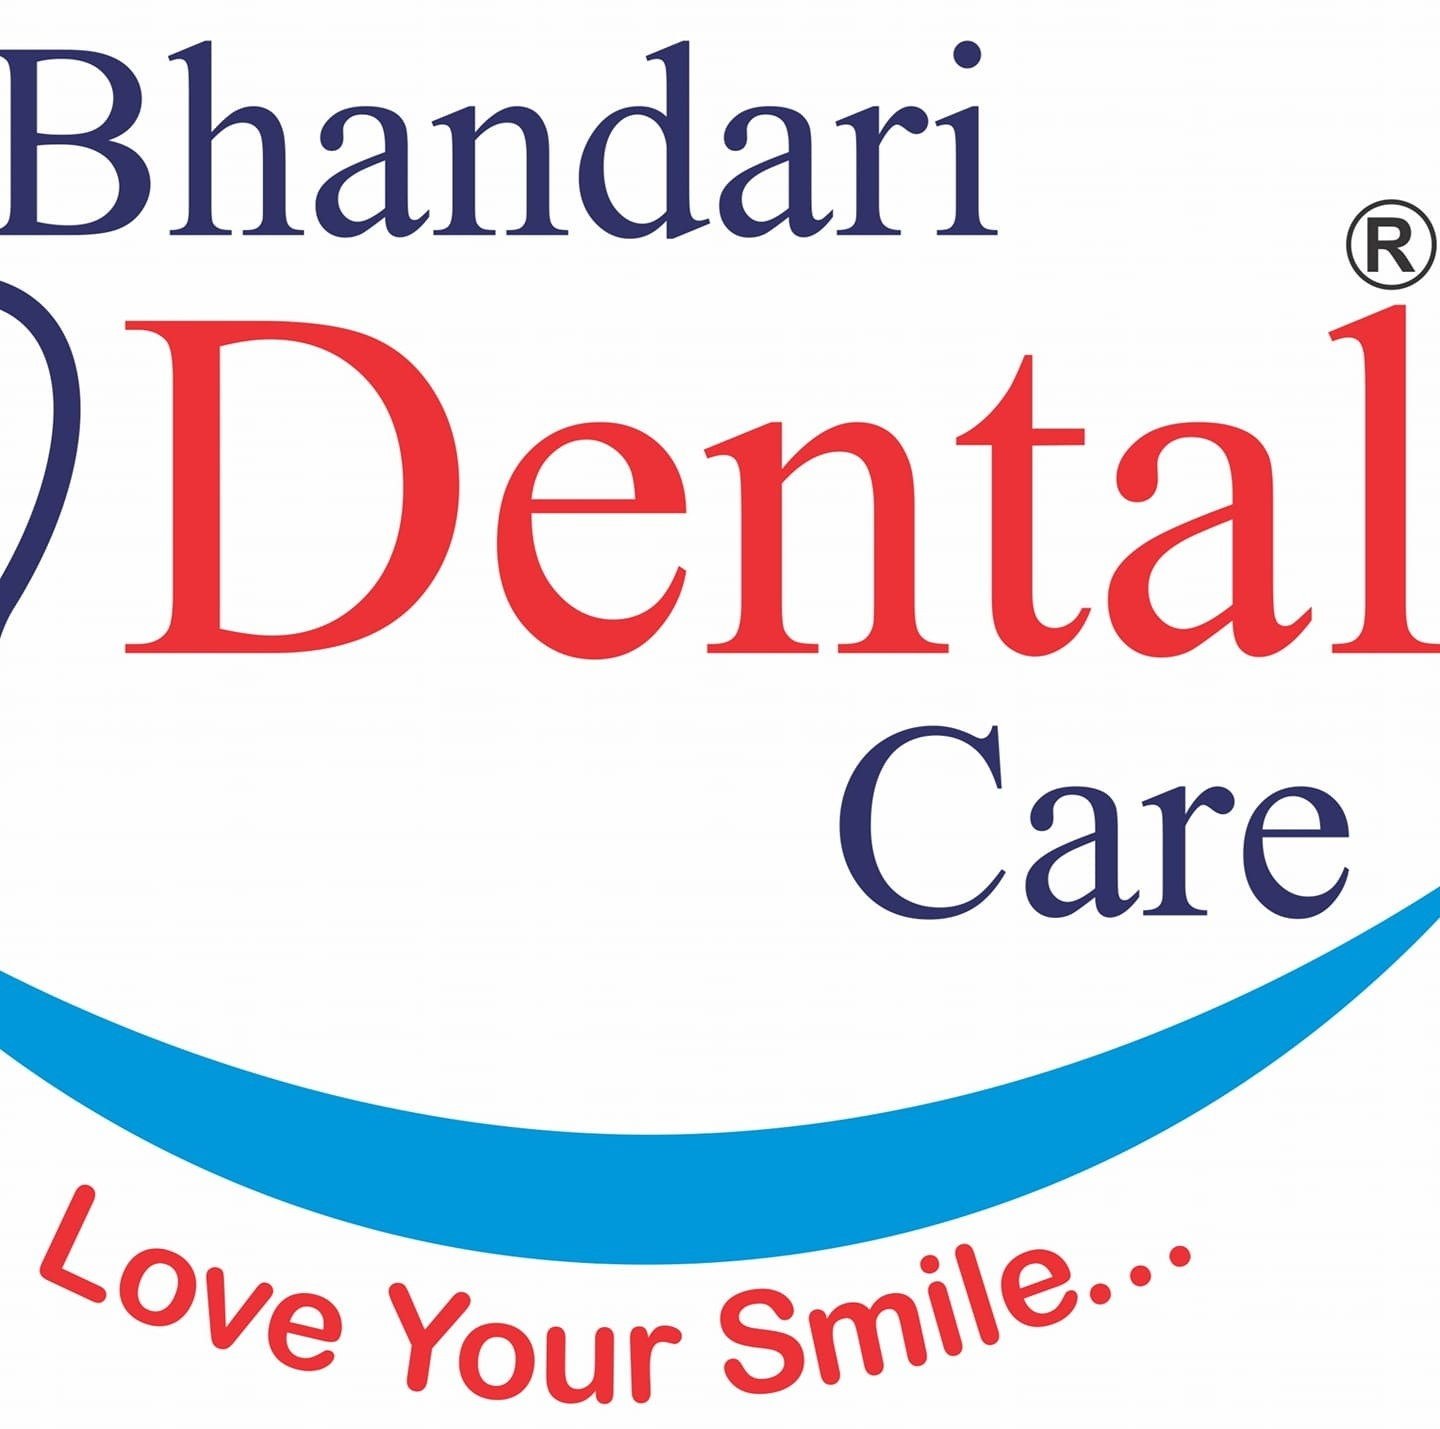 Bhandari Dental Care